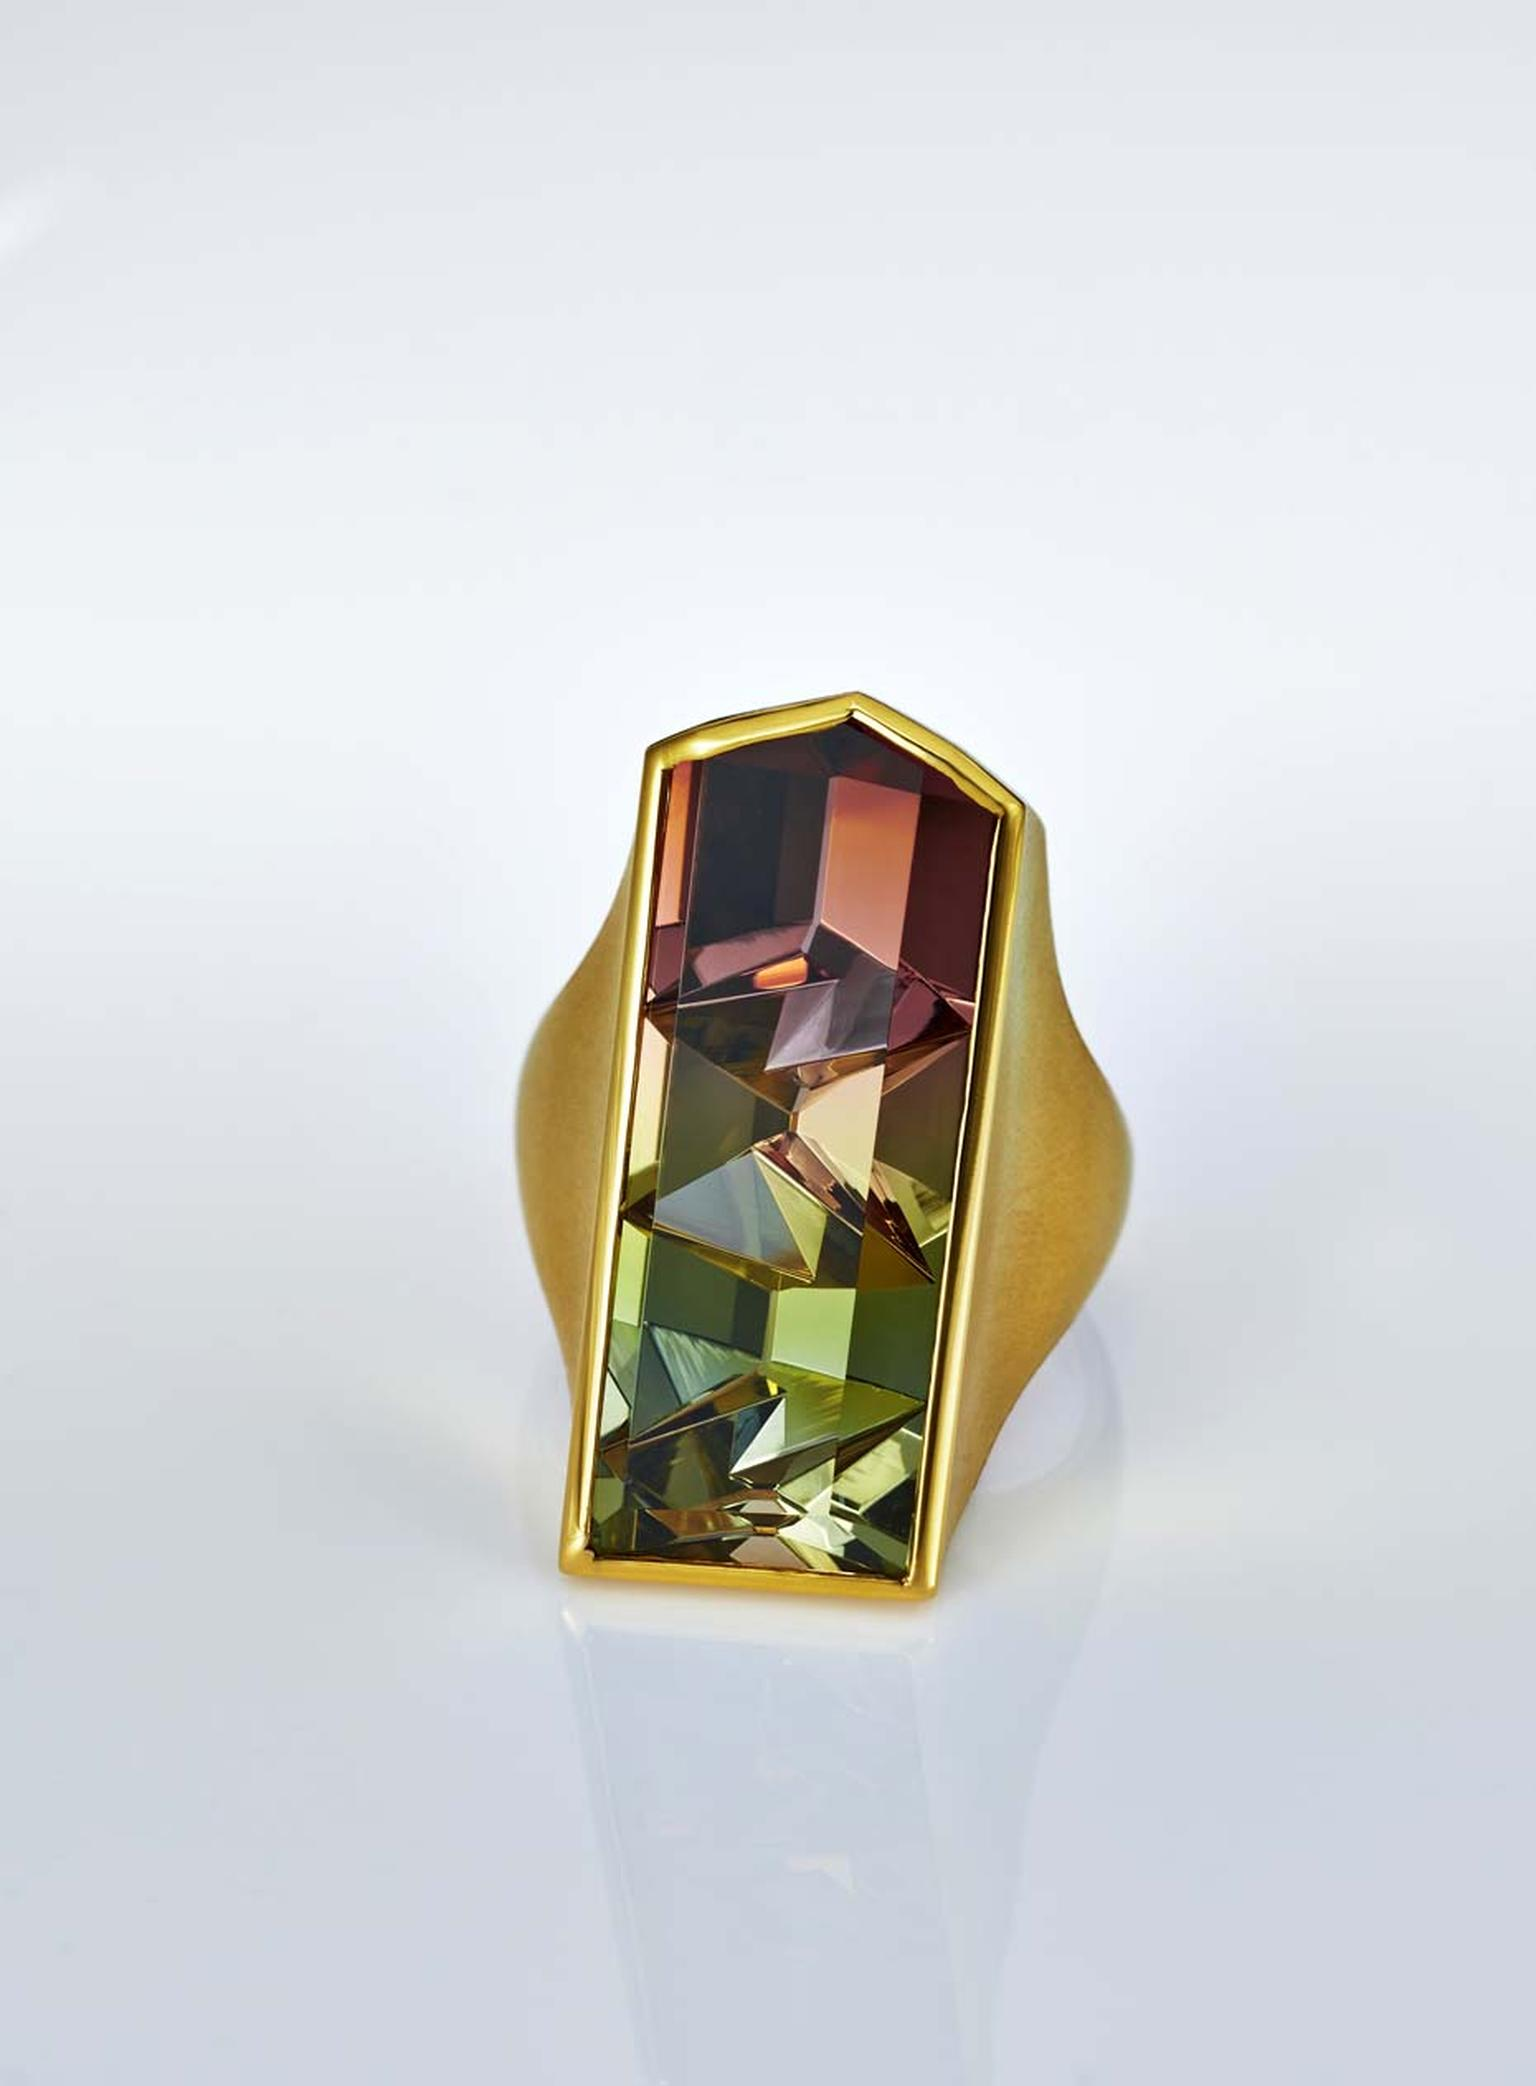 Atelier Munsteiner ring with a bi-colour tourmaline set in yellow gold.